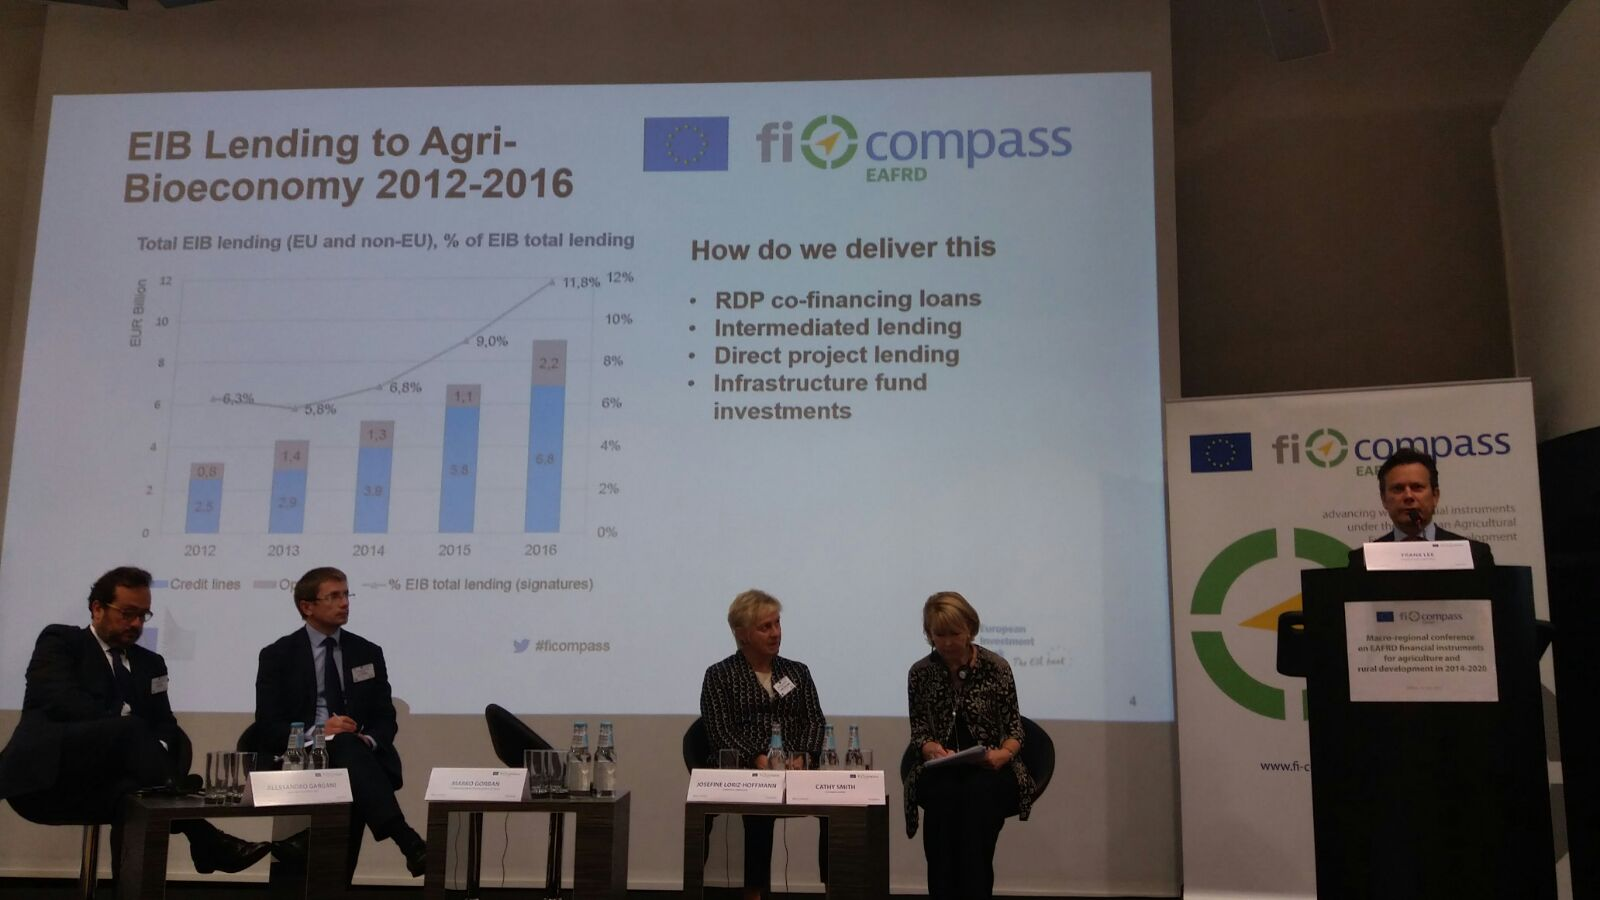 .@EIB F.Lee underlined EIB's work on agri & forestry ➡support to increase contribution of agriculture to bio and circular economy #ficompass https://t.co/pxeFxUI2zq